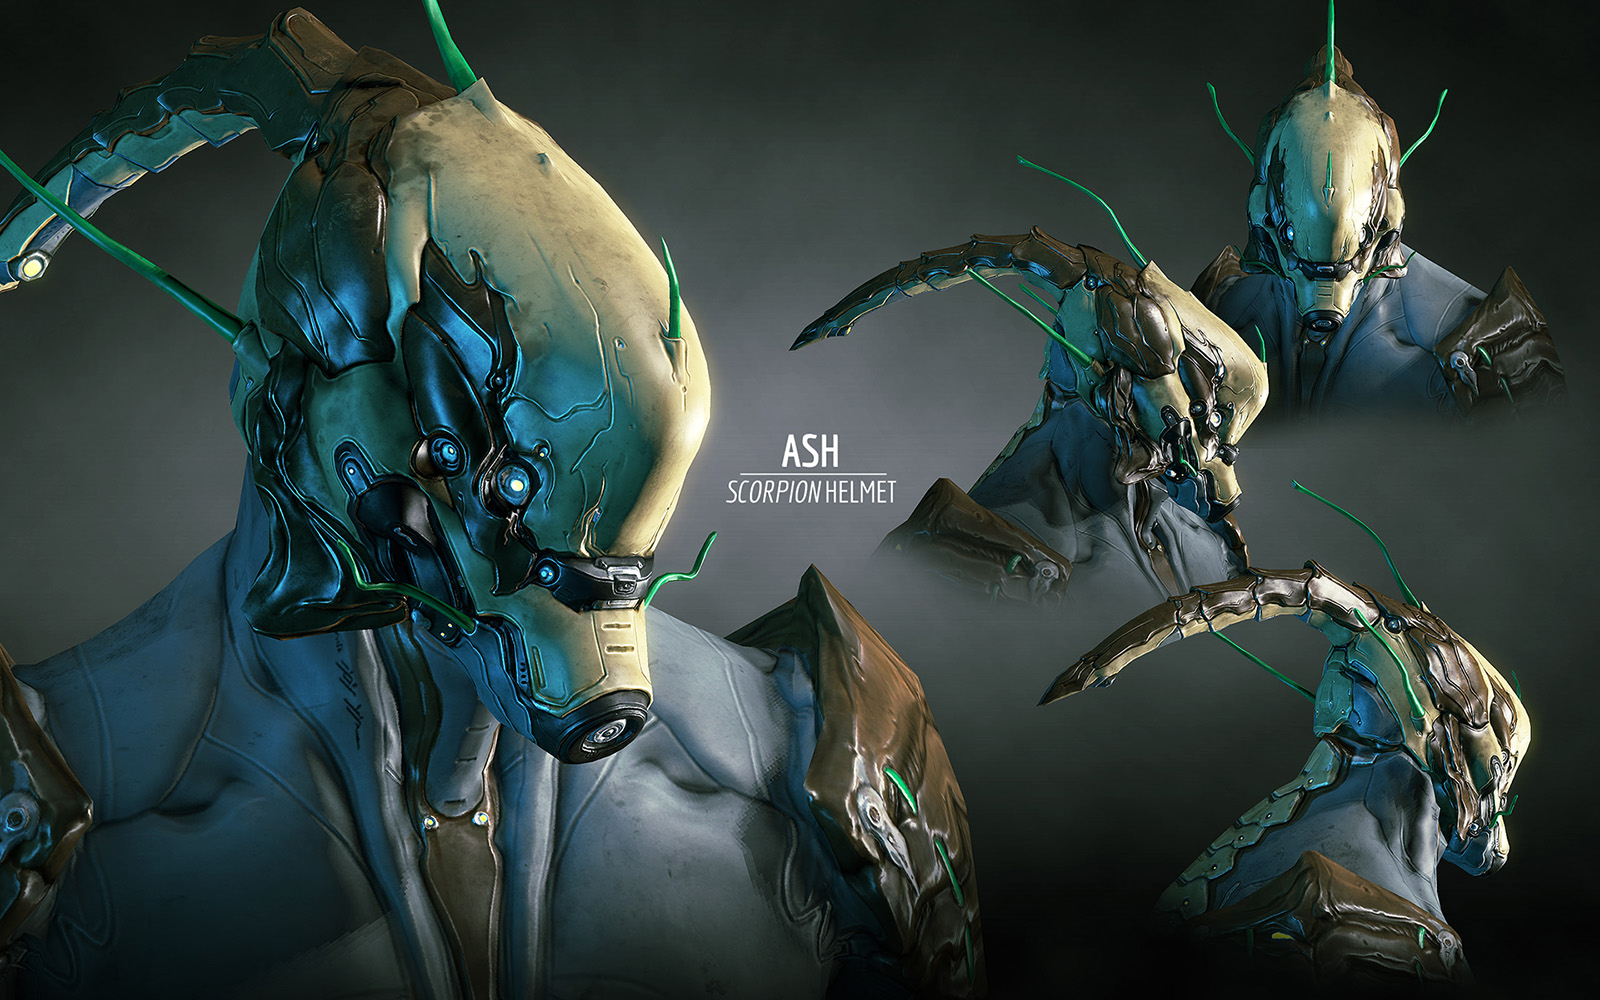 how to get ash warframe